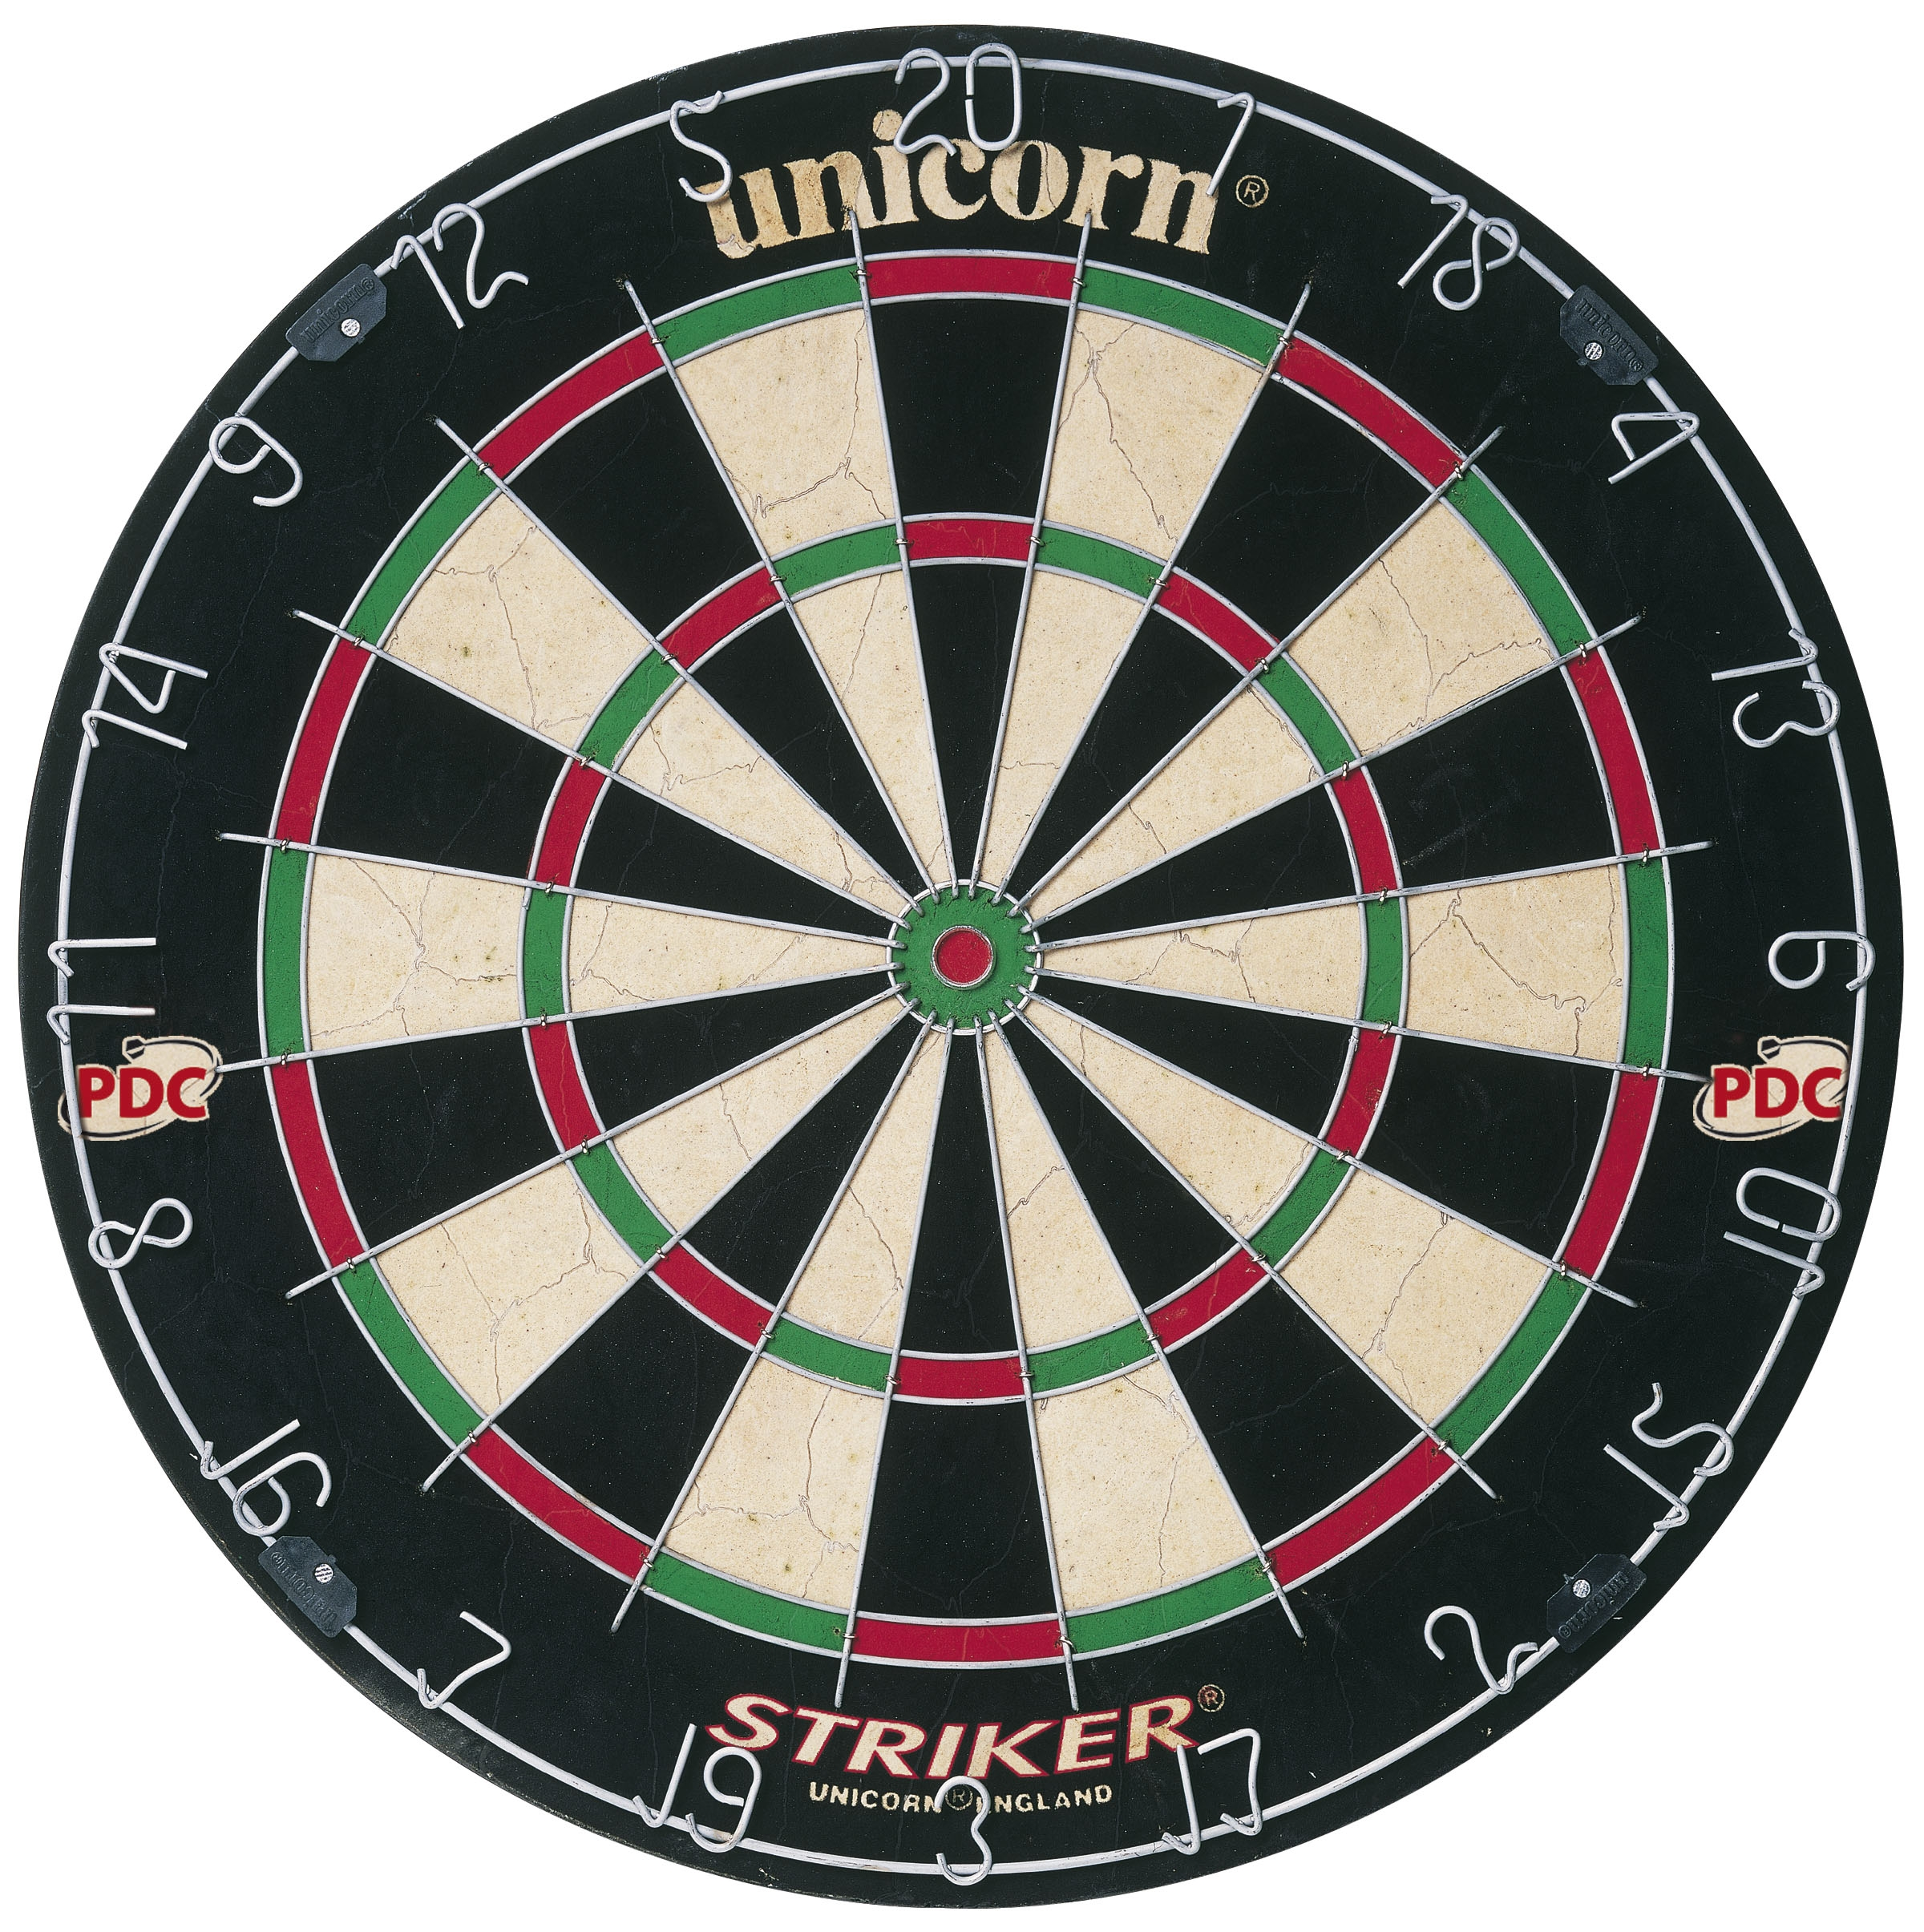 Darttavla Unicorn Striker